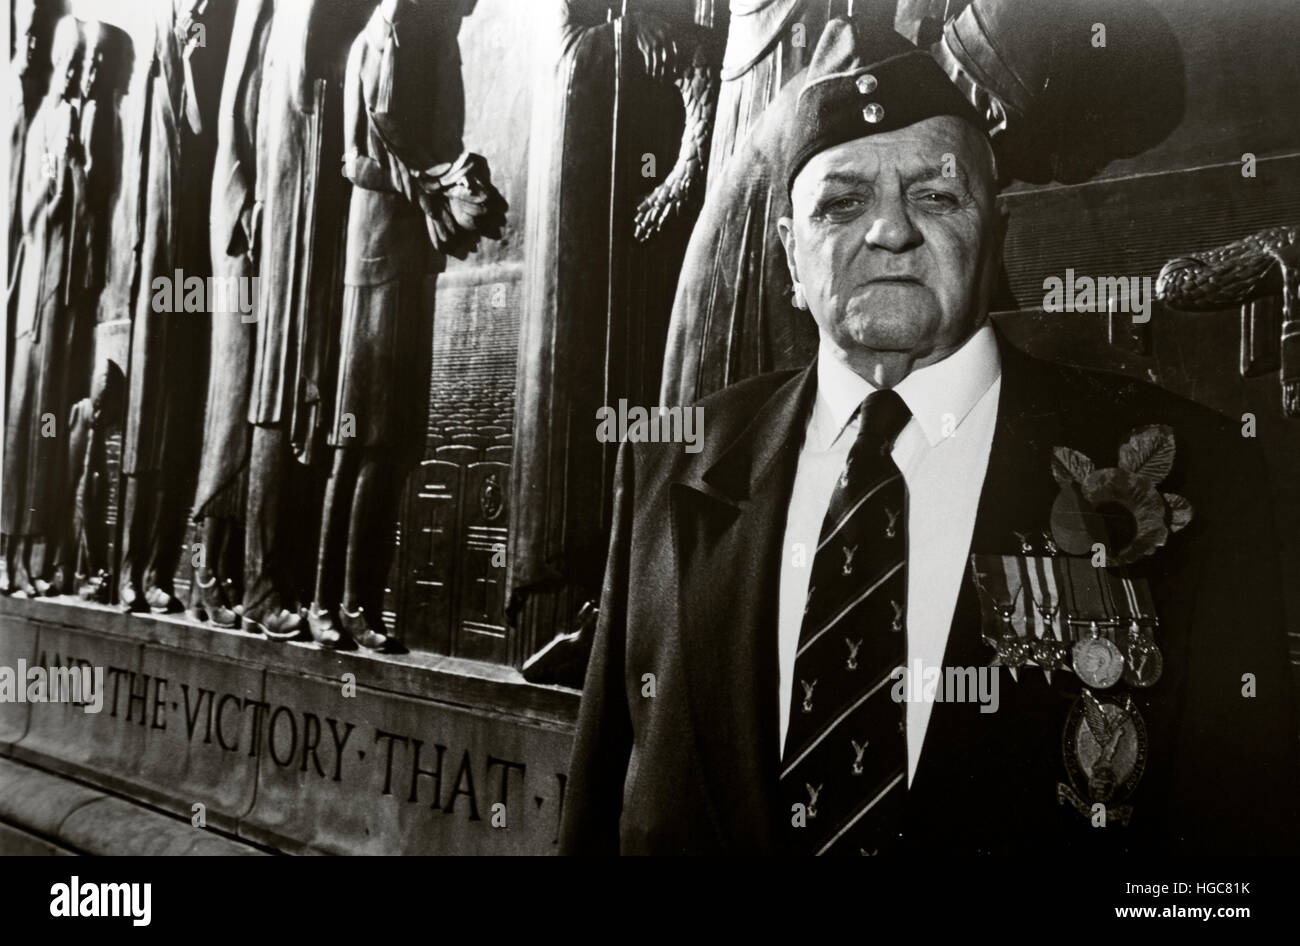 Old soldier at 2nd World war Memorial, Liverpool, Remembrance day - Stock Image